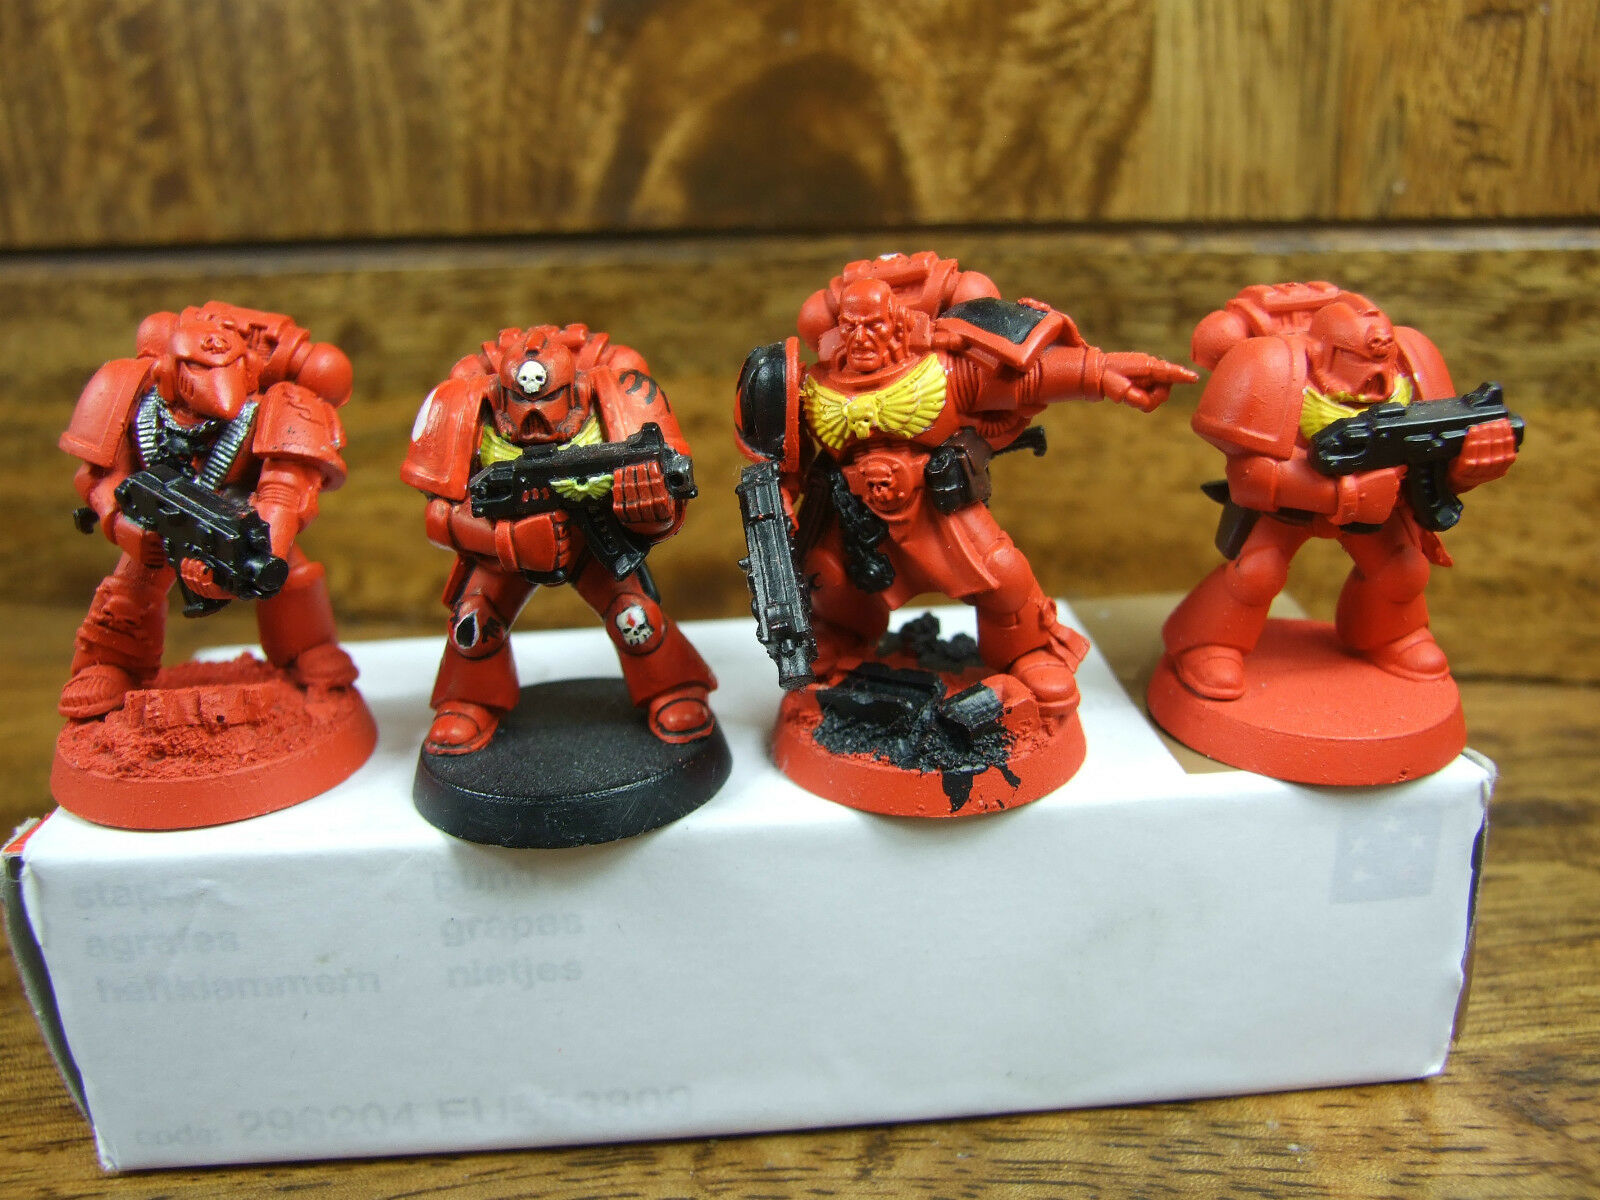 23 METAL AND PLASTIC BLOOD ANGELS SOME NICE CONVERSIONS CONVERSIONS CONVERSIONS PART PAINTED (504) fcb563